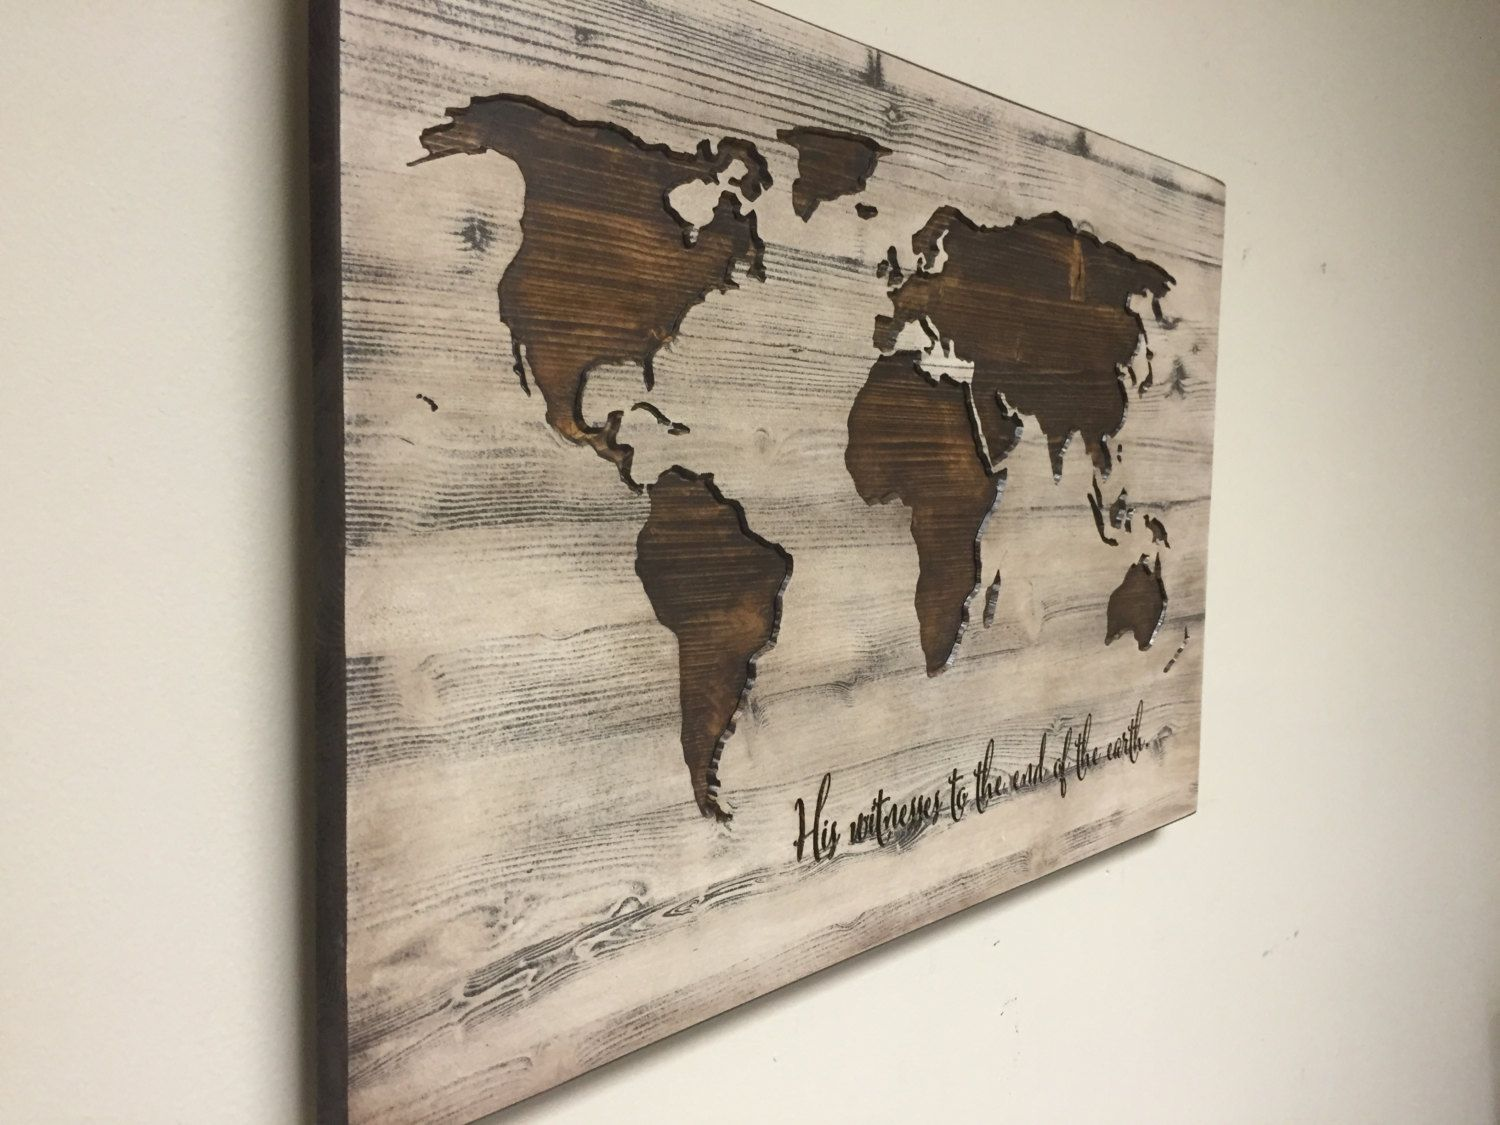 Best 25 World map decor ideas only on Pinterest Travel